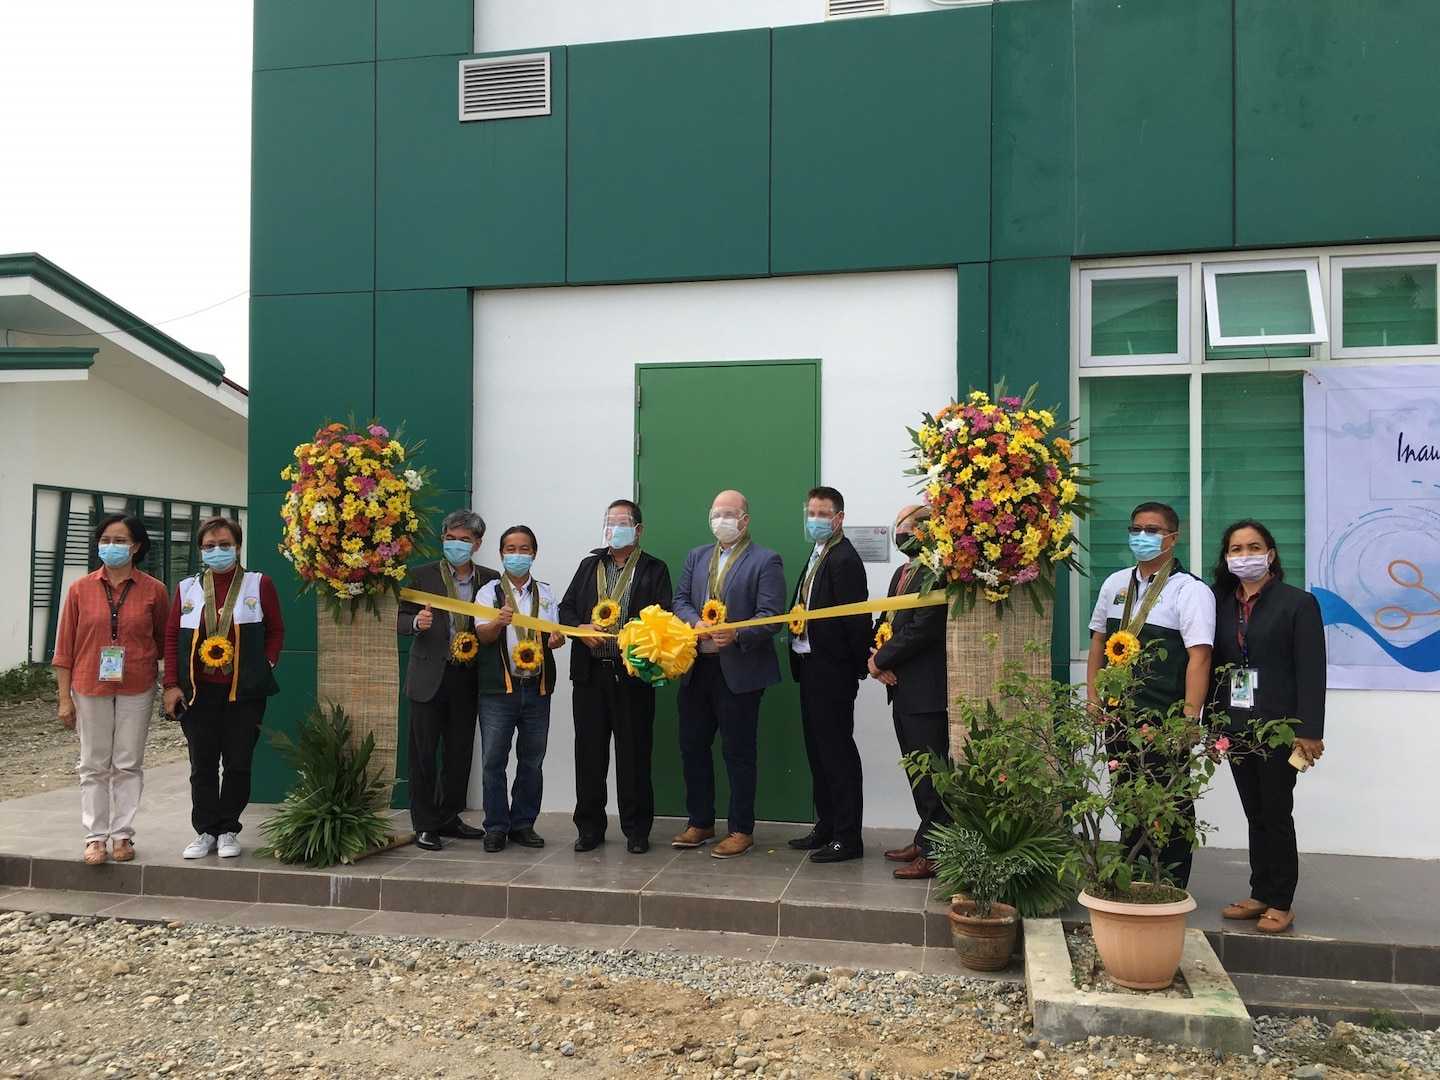 United States and Philippines Commission Zoonotic Disease Laboratory in Tuguegarao